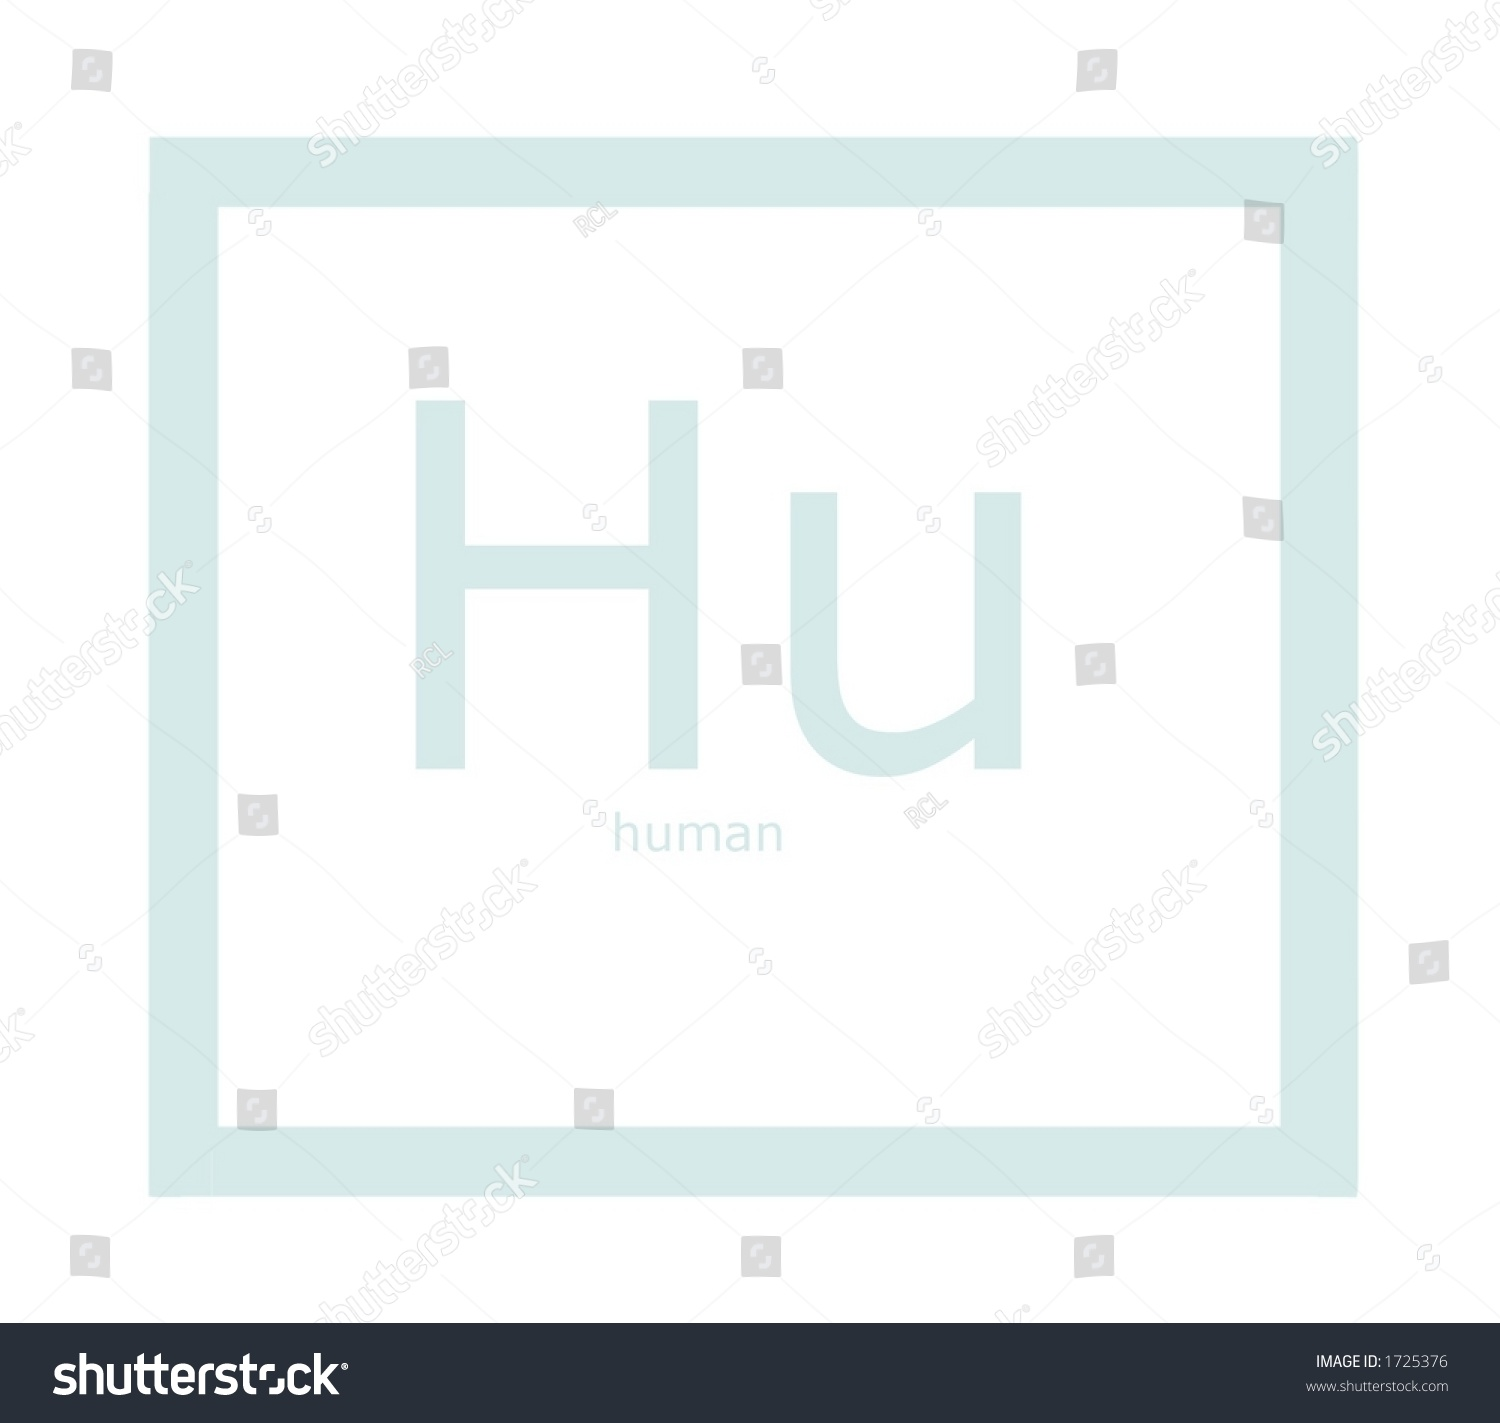 Hu Human Element On Periodic Table Stock Photo Edit Now 1725376